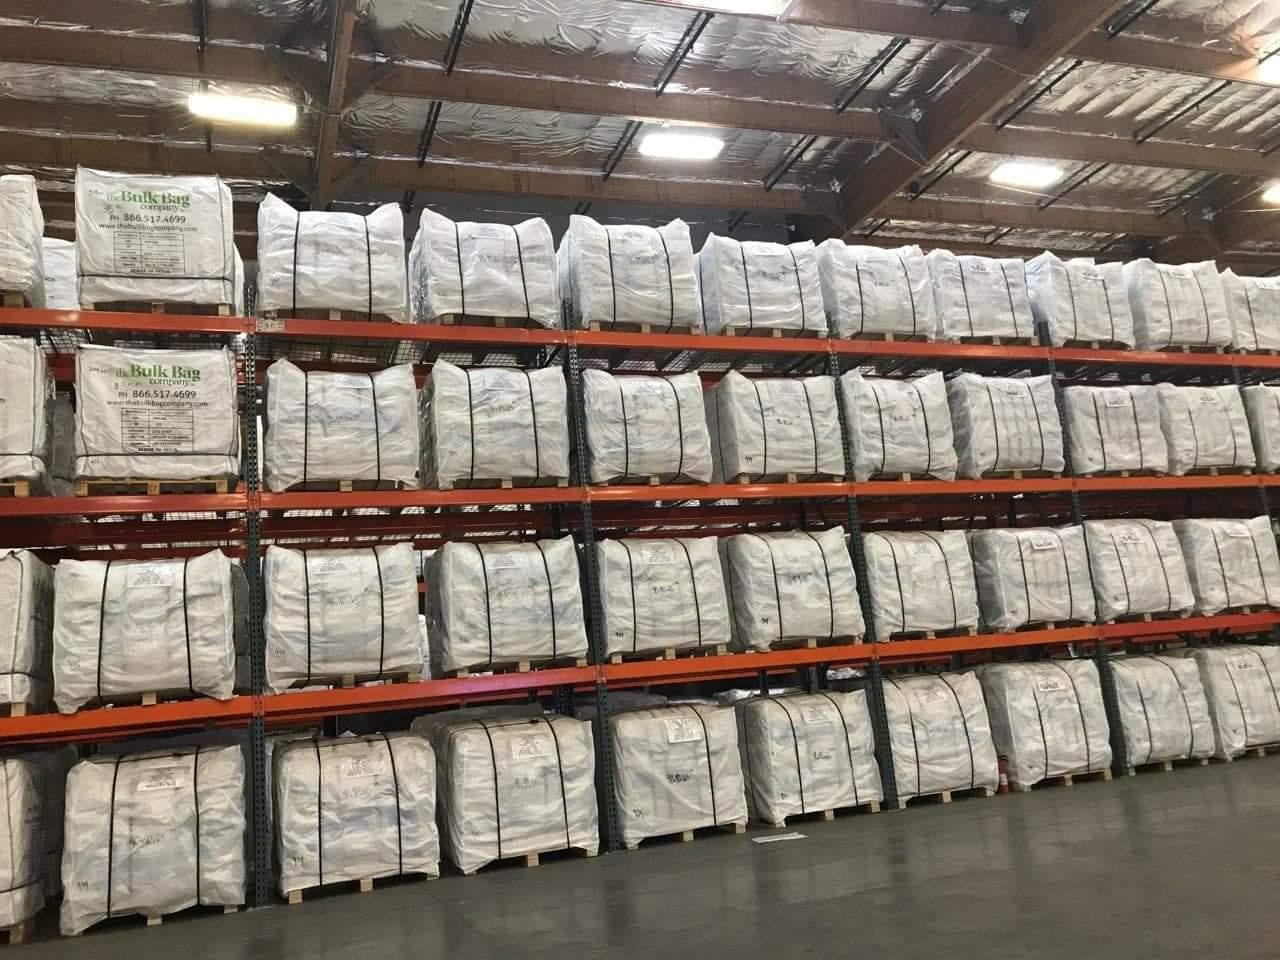 big bags on pallets on racking structures